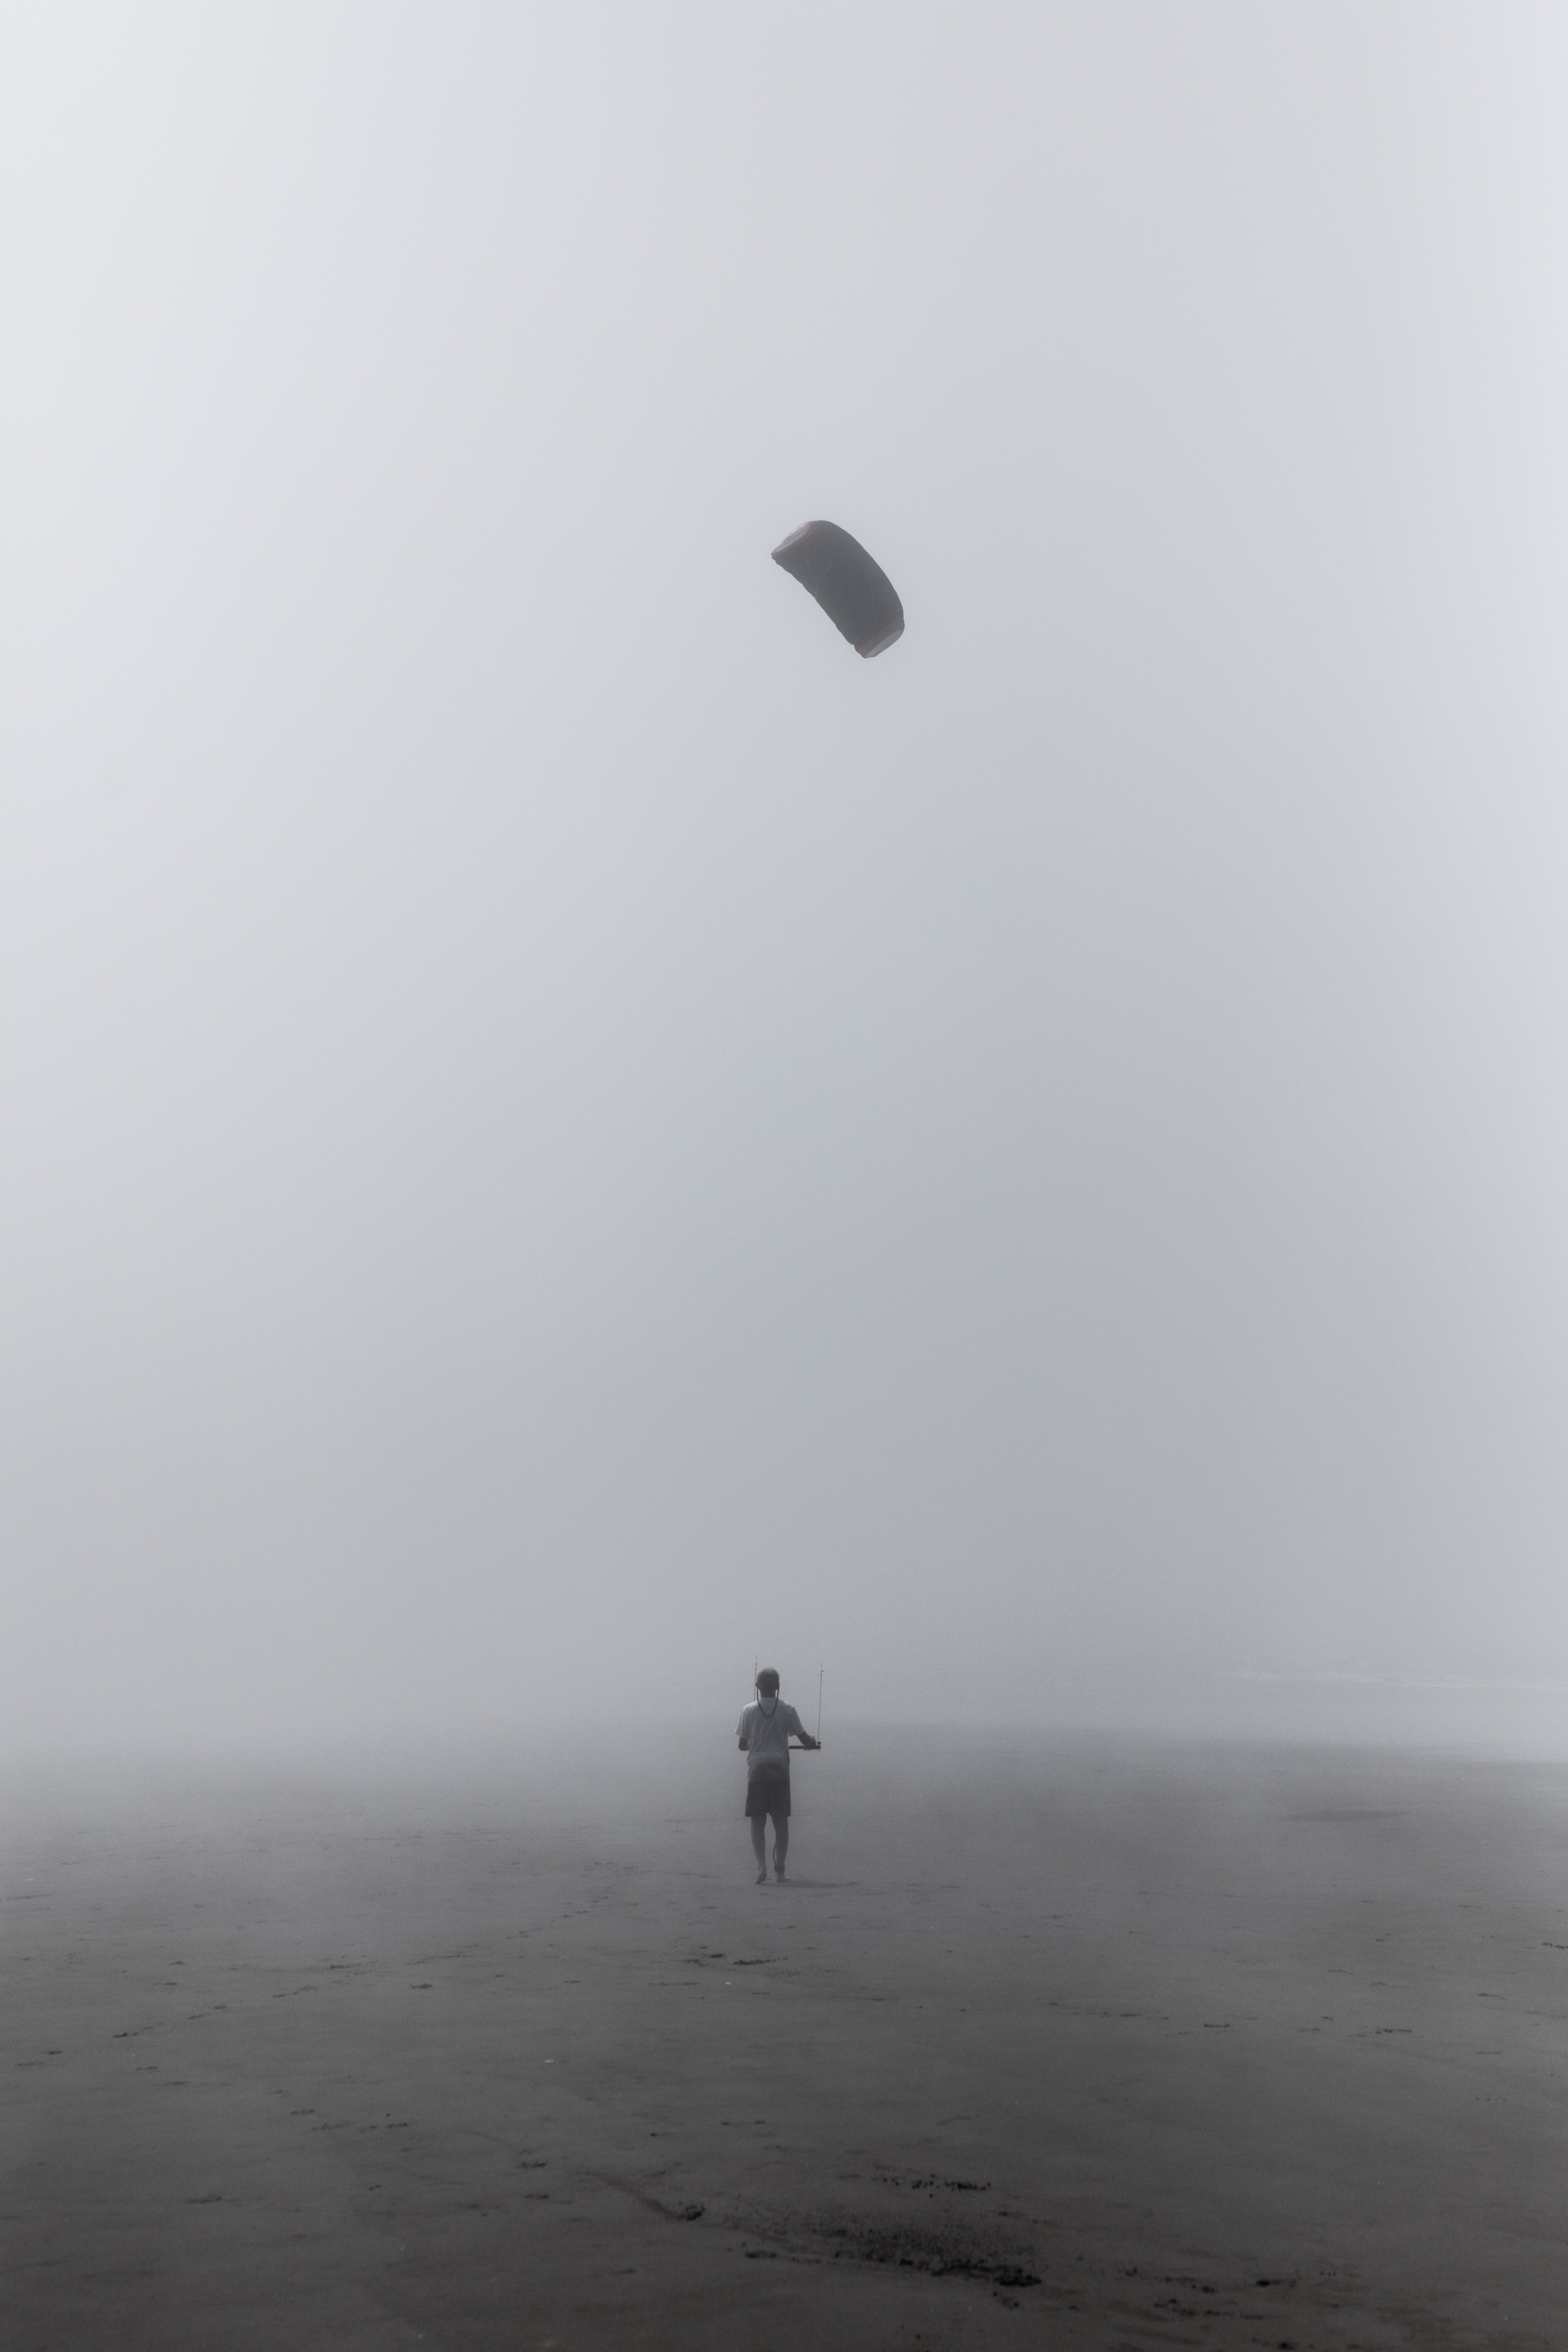 grayscale photography of person flying kite